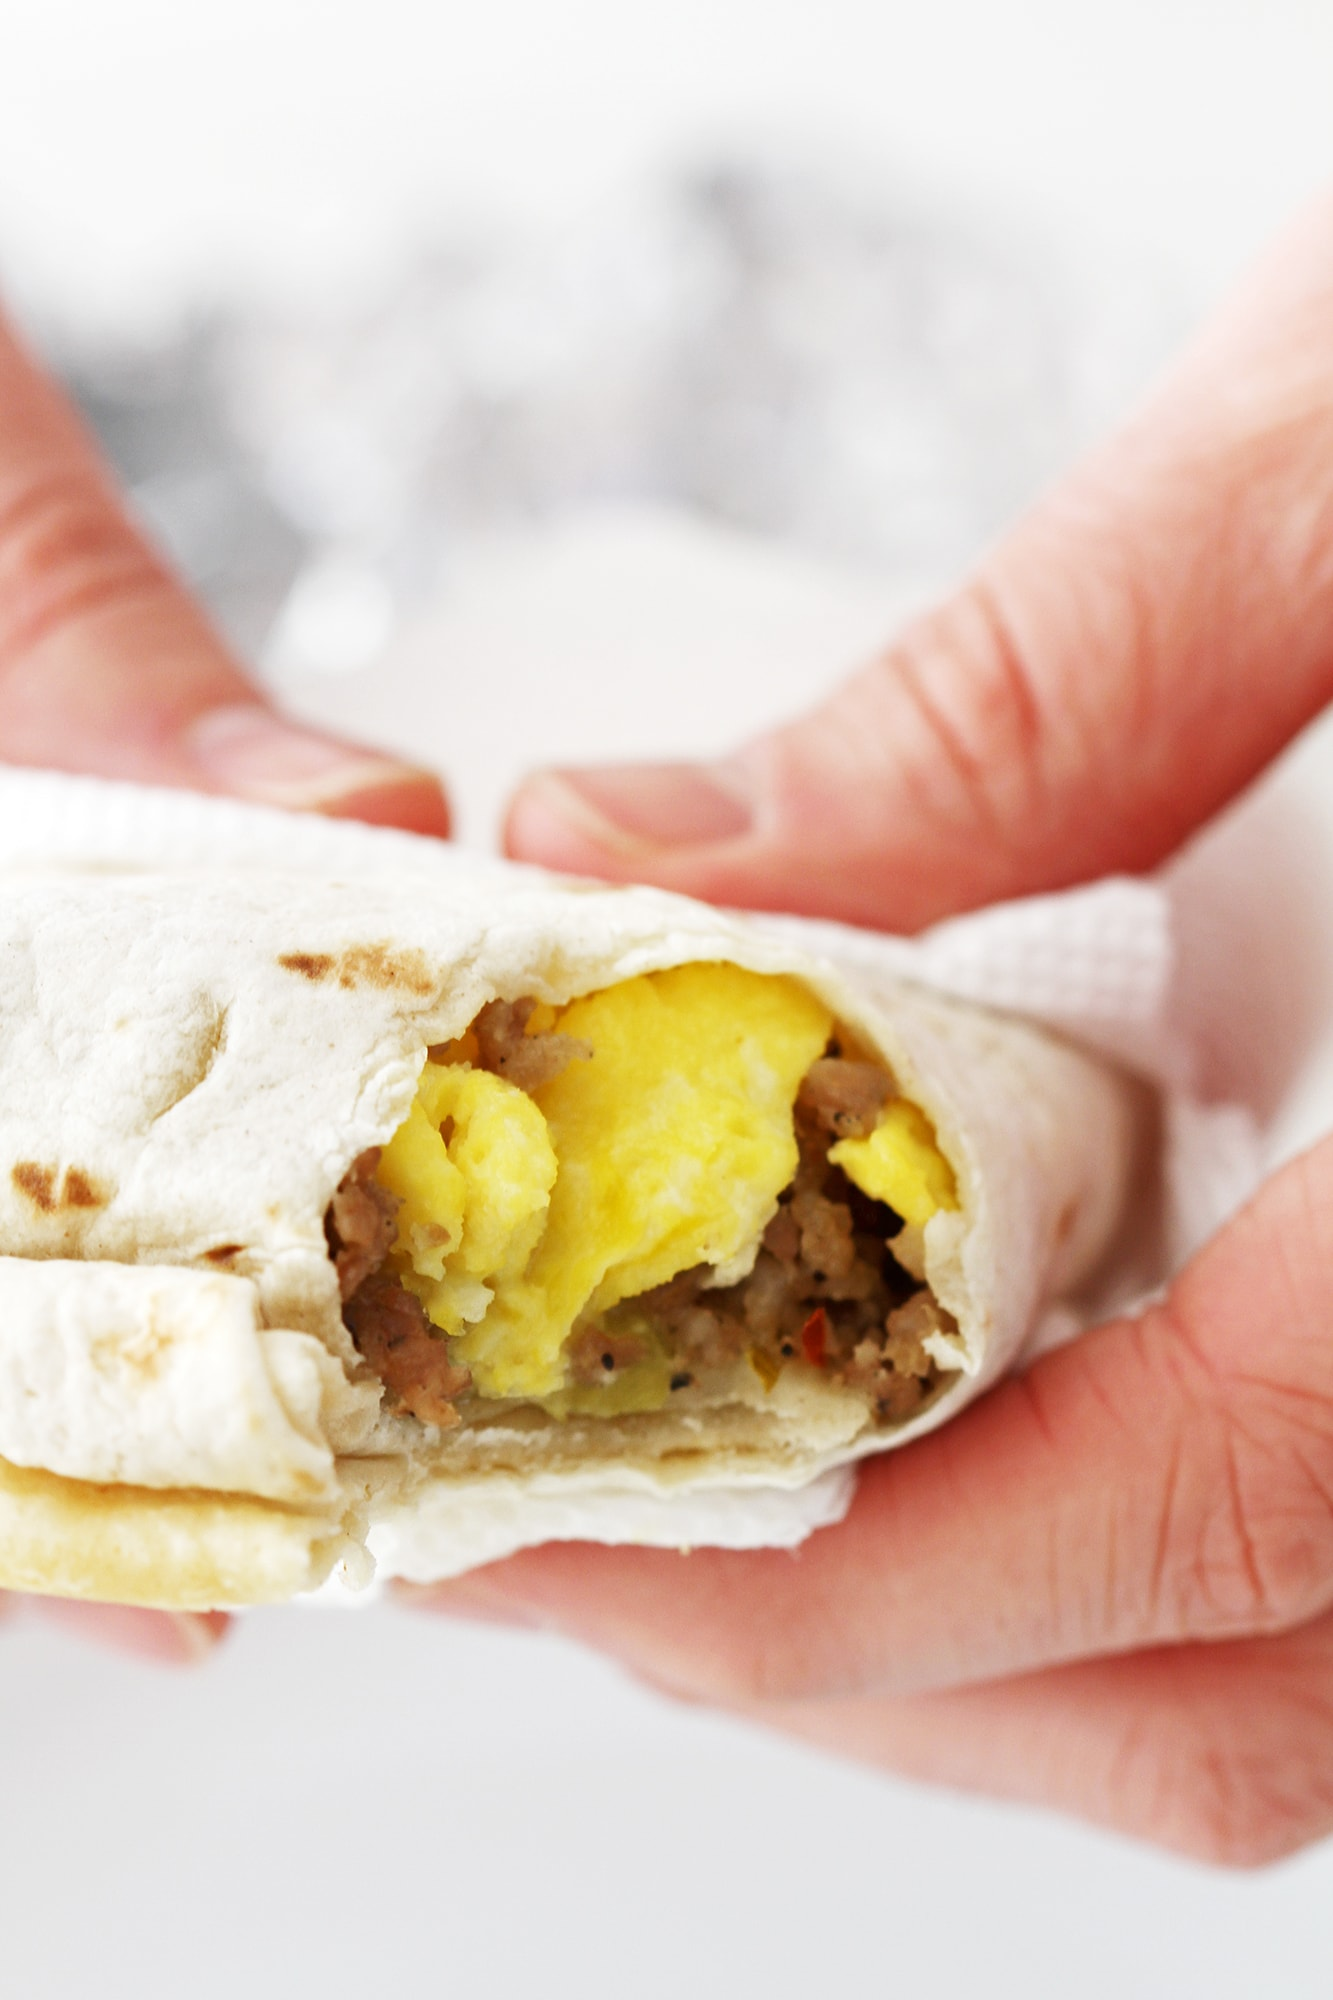 hands holding a freezer breakfast burrito